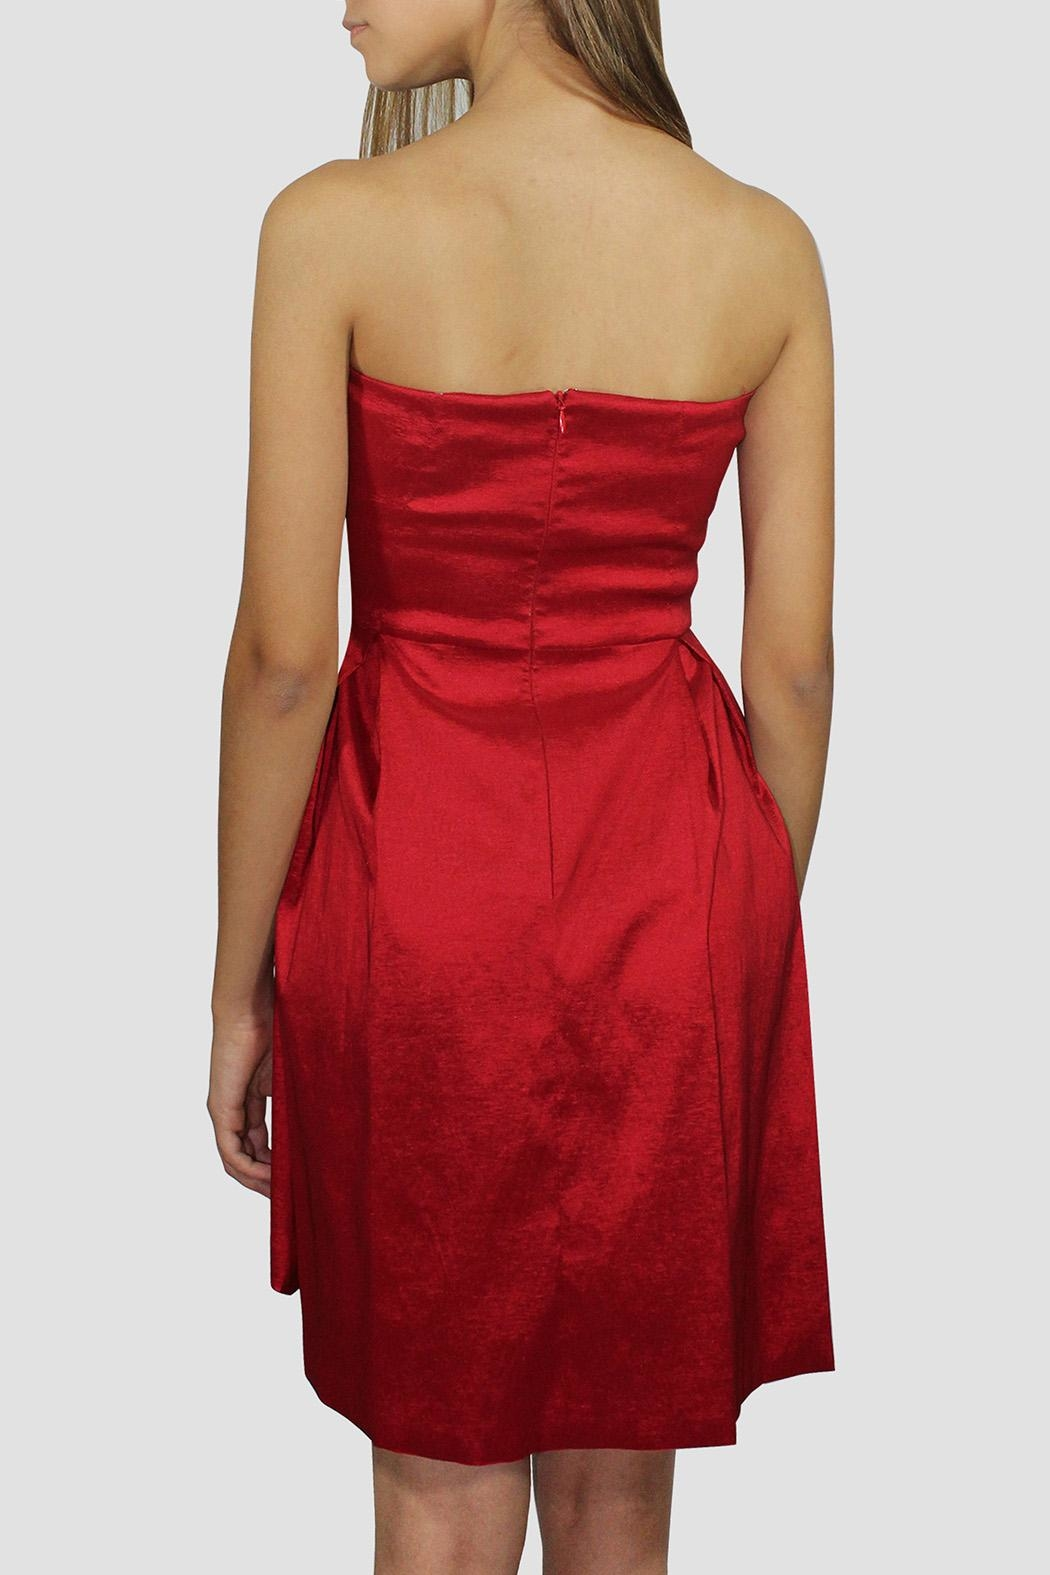 SoZu Red Strapless Dress - Side Cropped Image